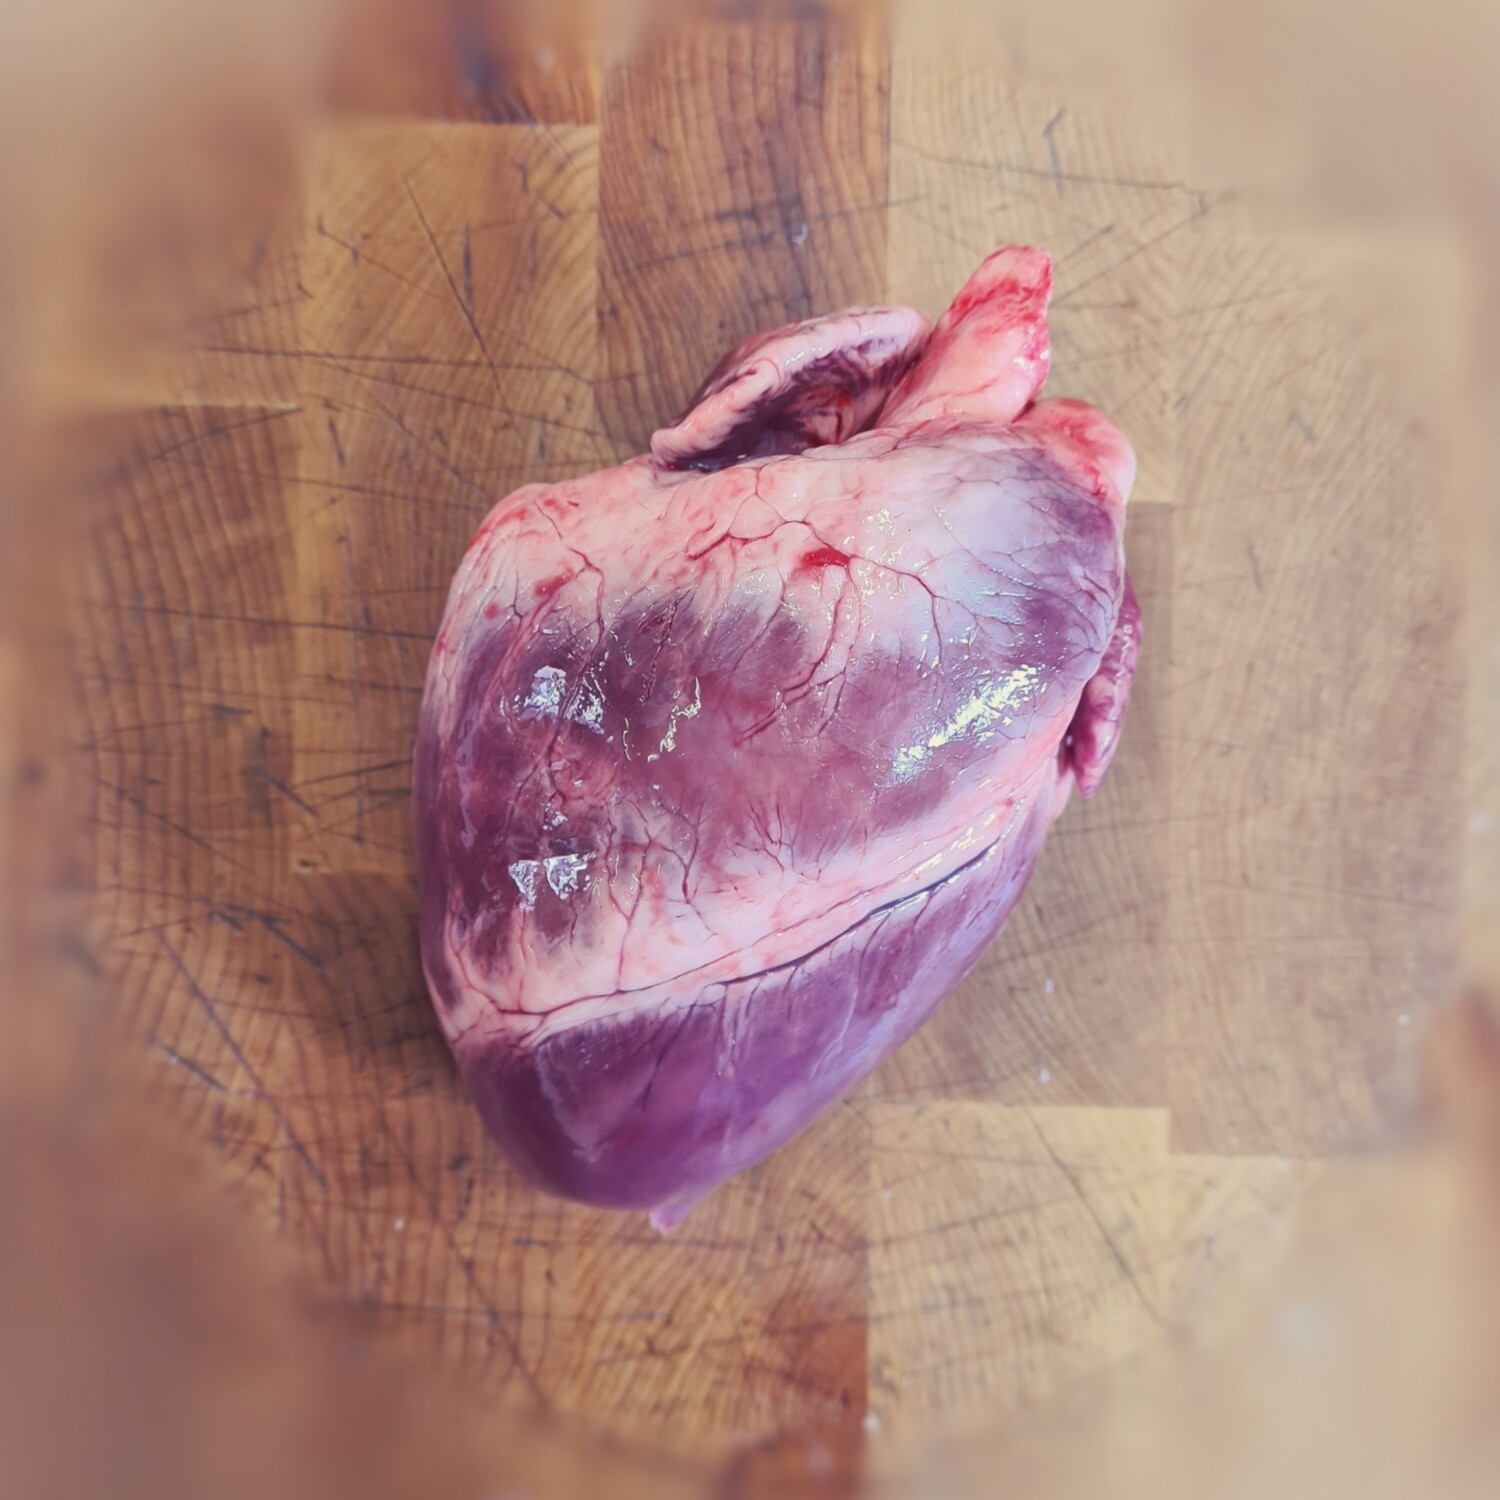 Rare Breed Pigs Heart